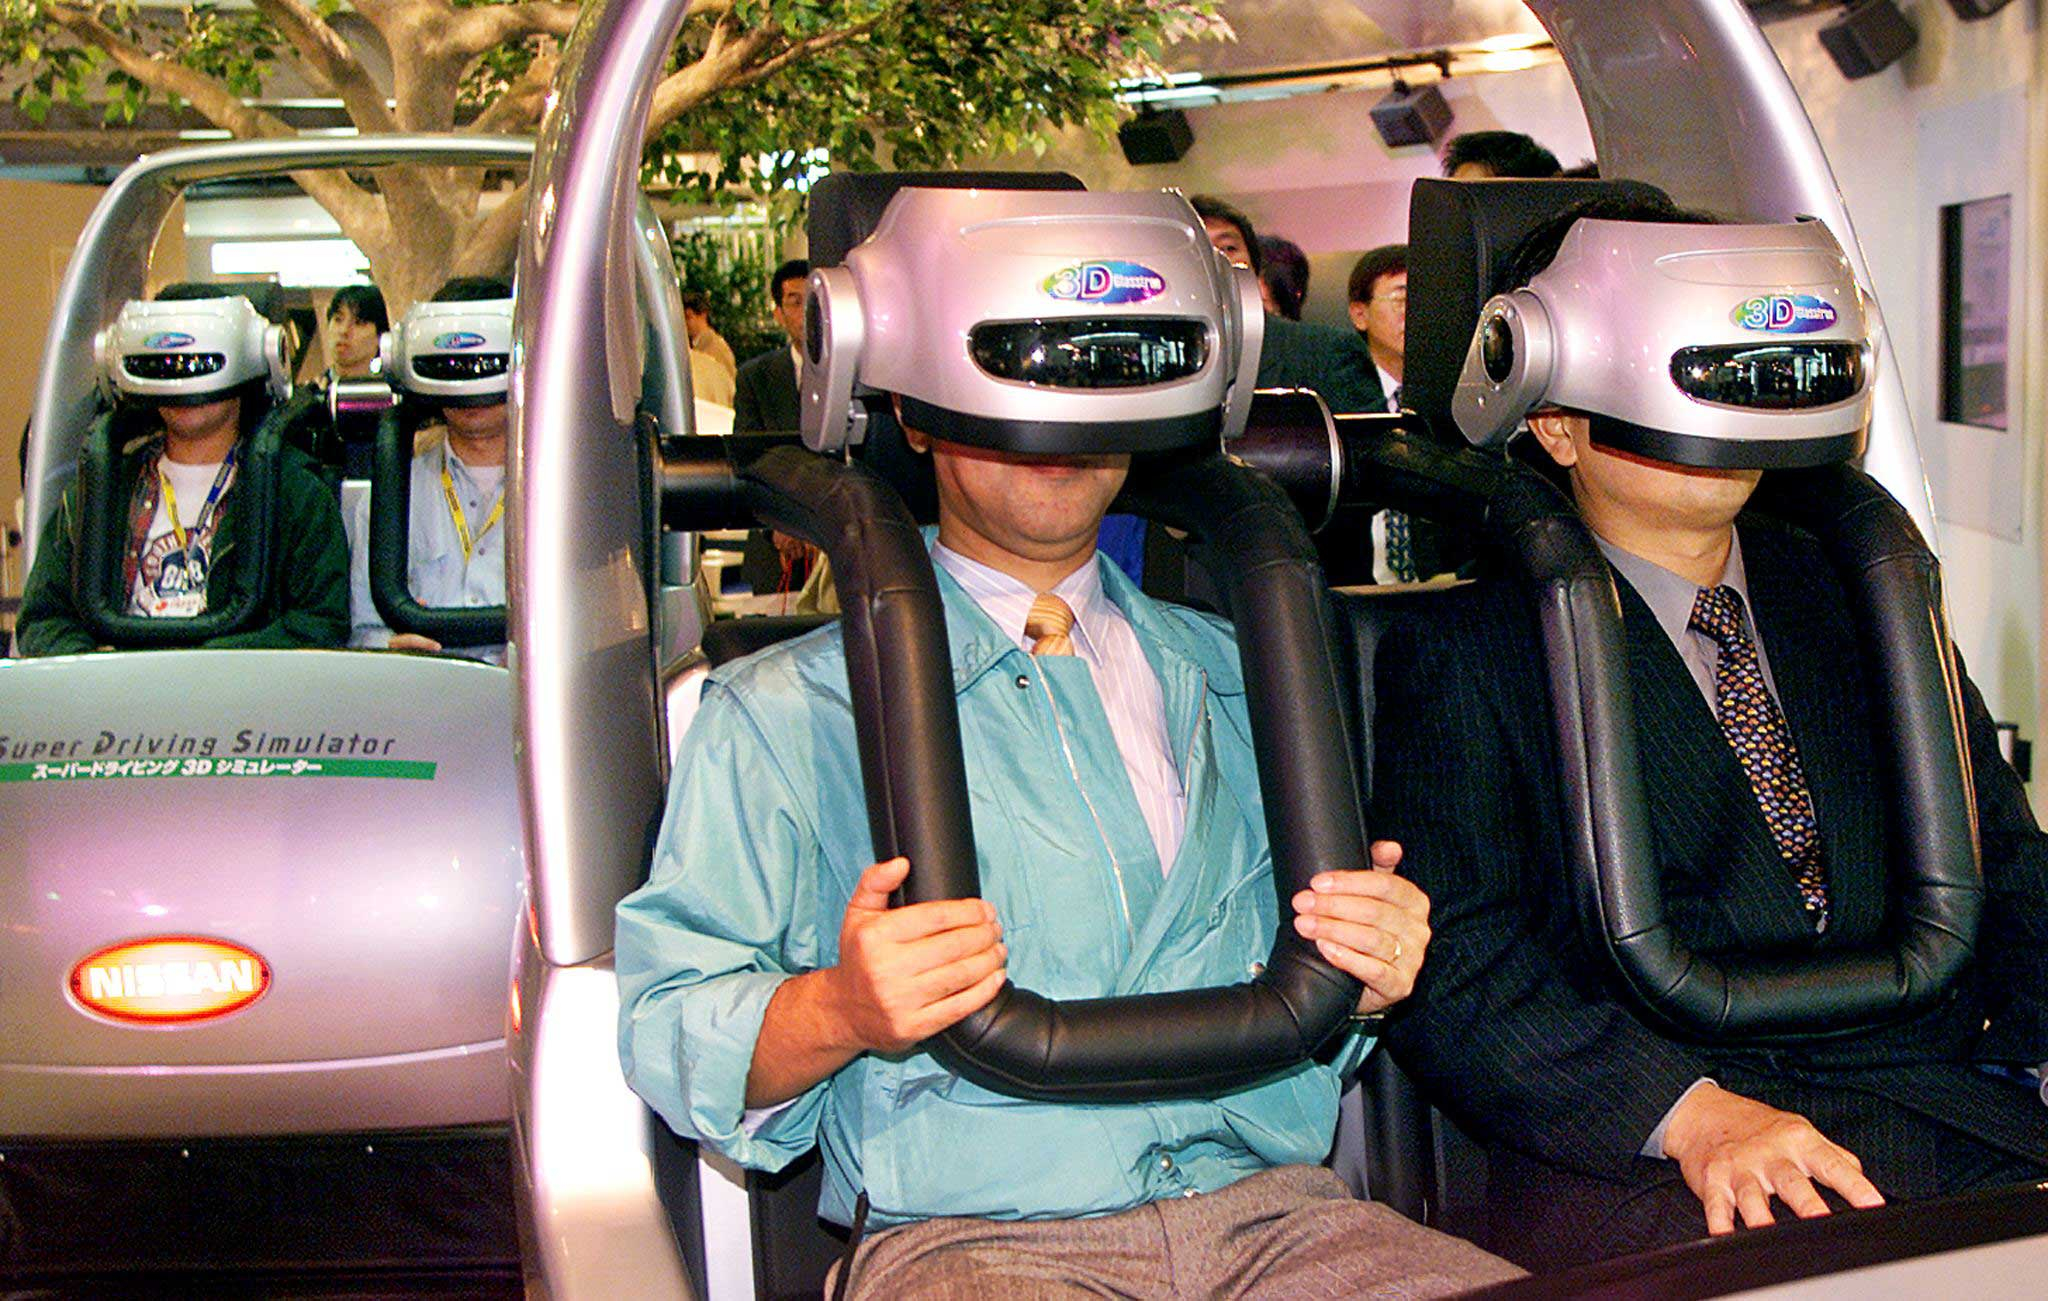 1999                                                              Visitors enjoy virtual reality driving with 3-D goggles and driving simulators for the presentation of Japan's automaker Nissan at the Tokyo Motor Show in Tokyo.